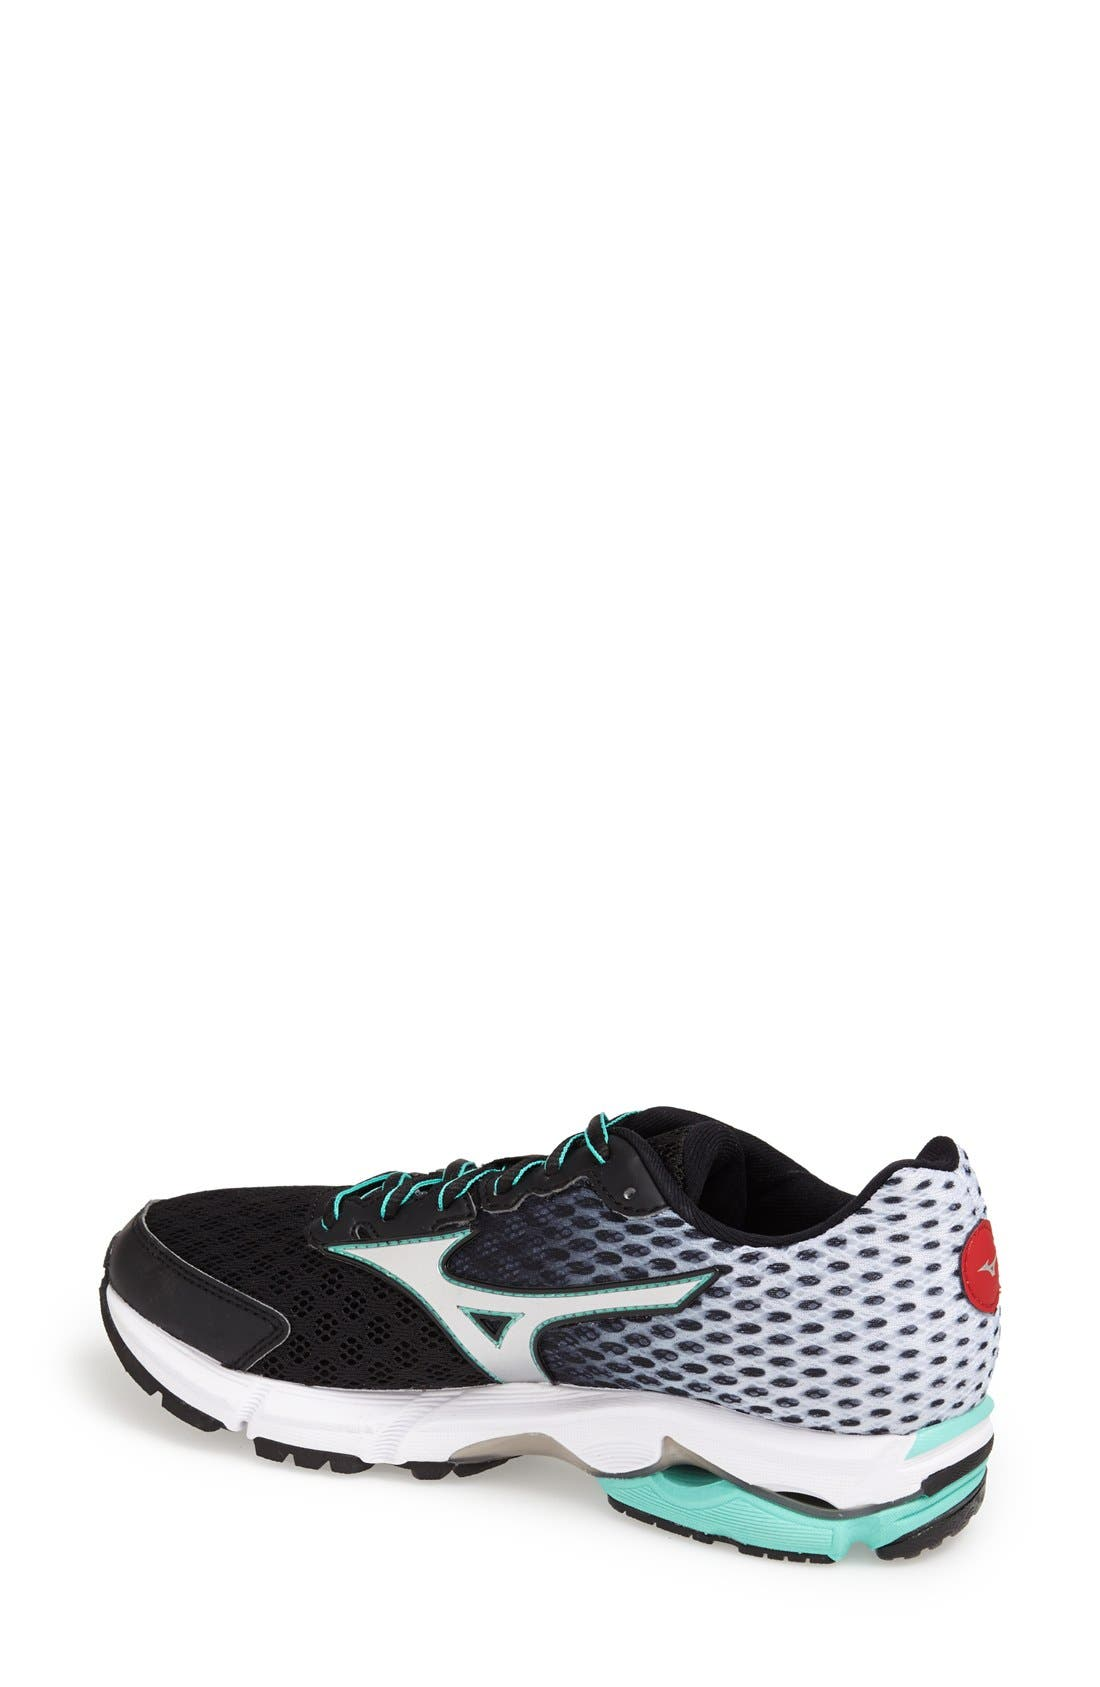 'Wave Rider 18' Running Shoe,                             Alternate thumbnail 3, color,                             017